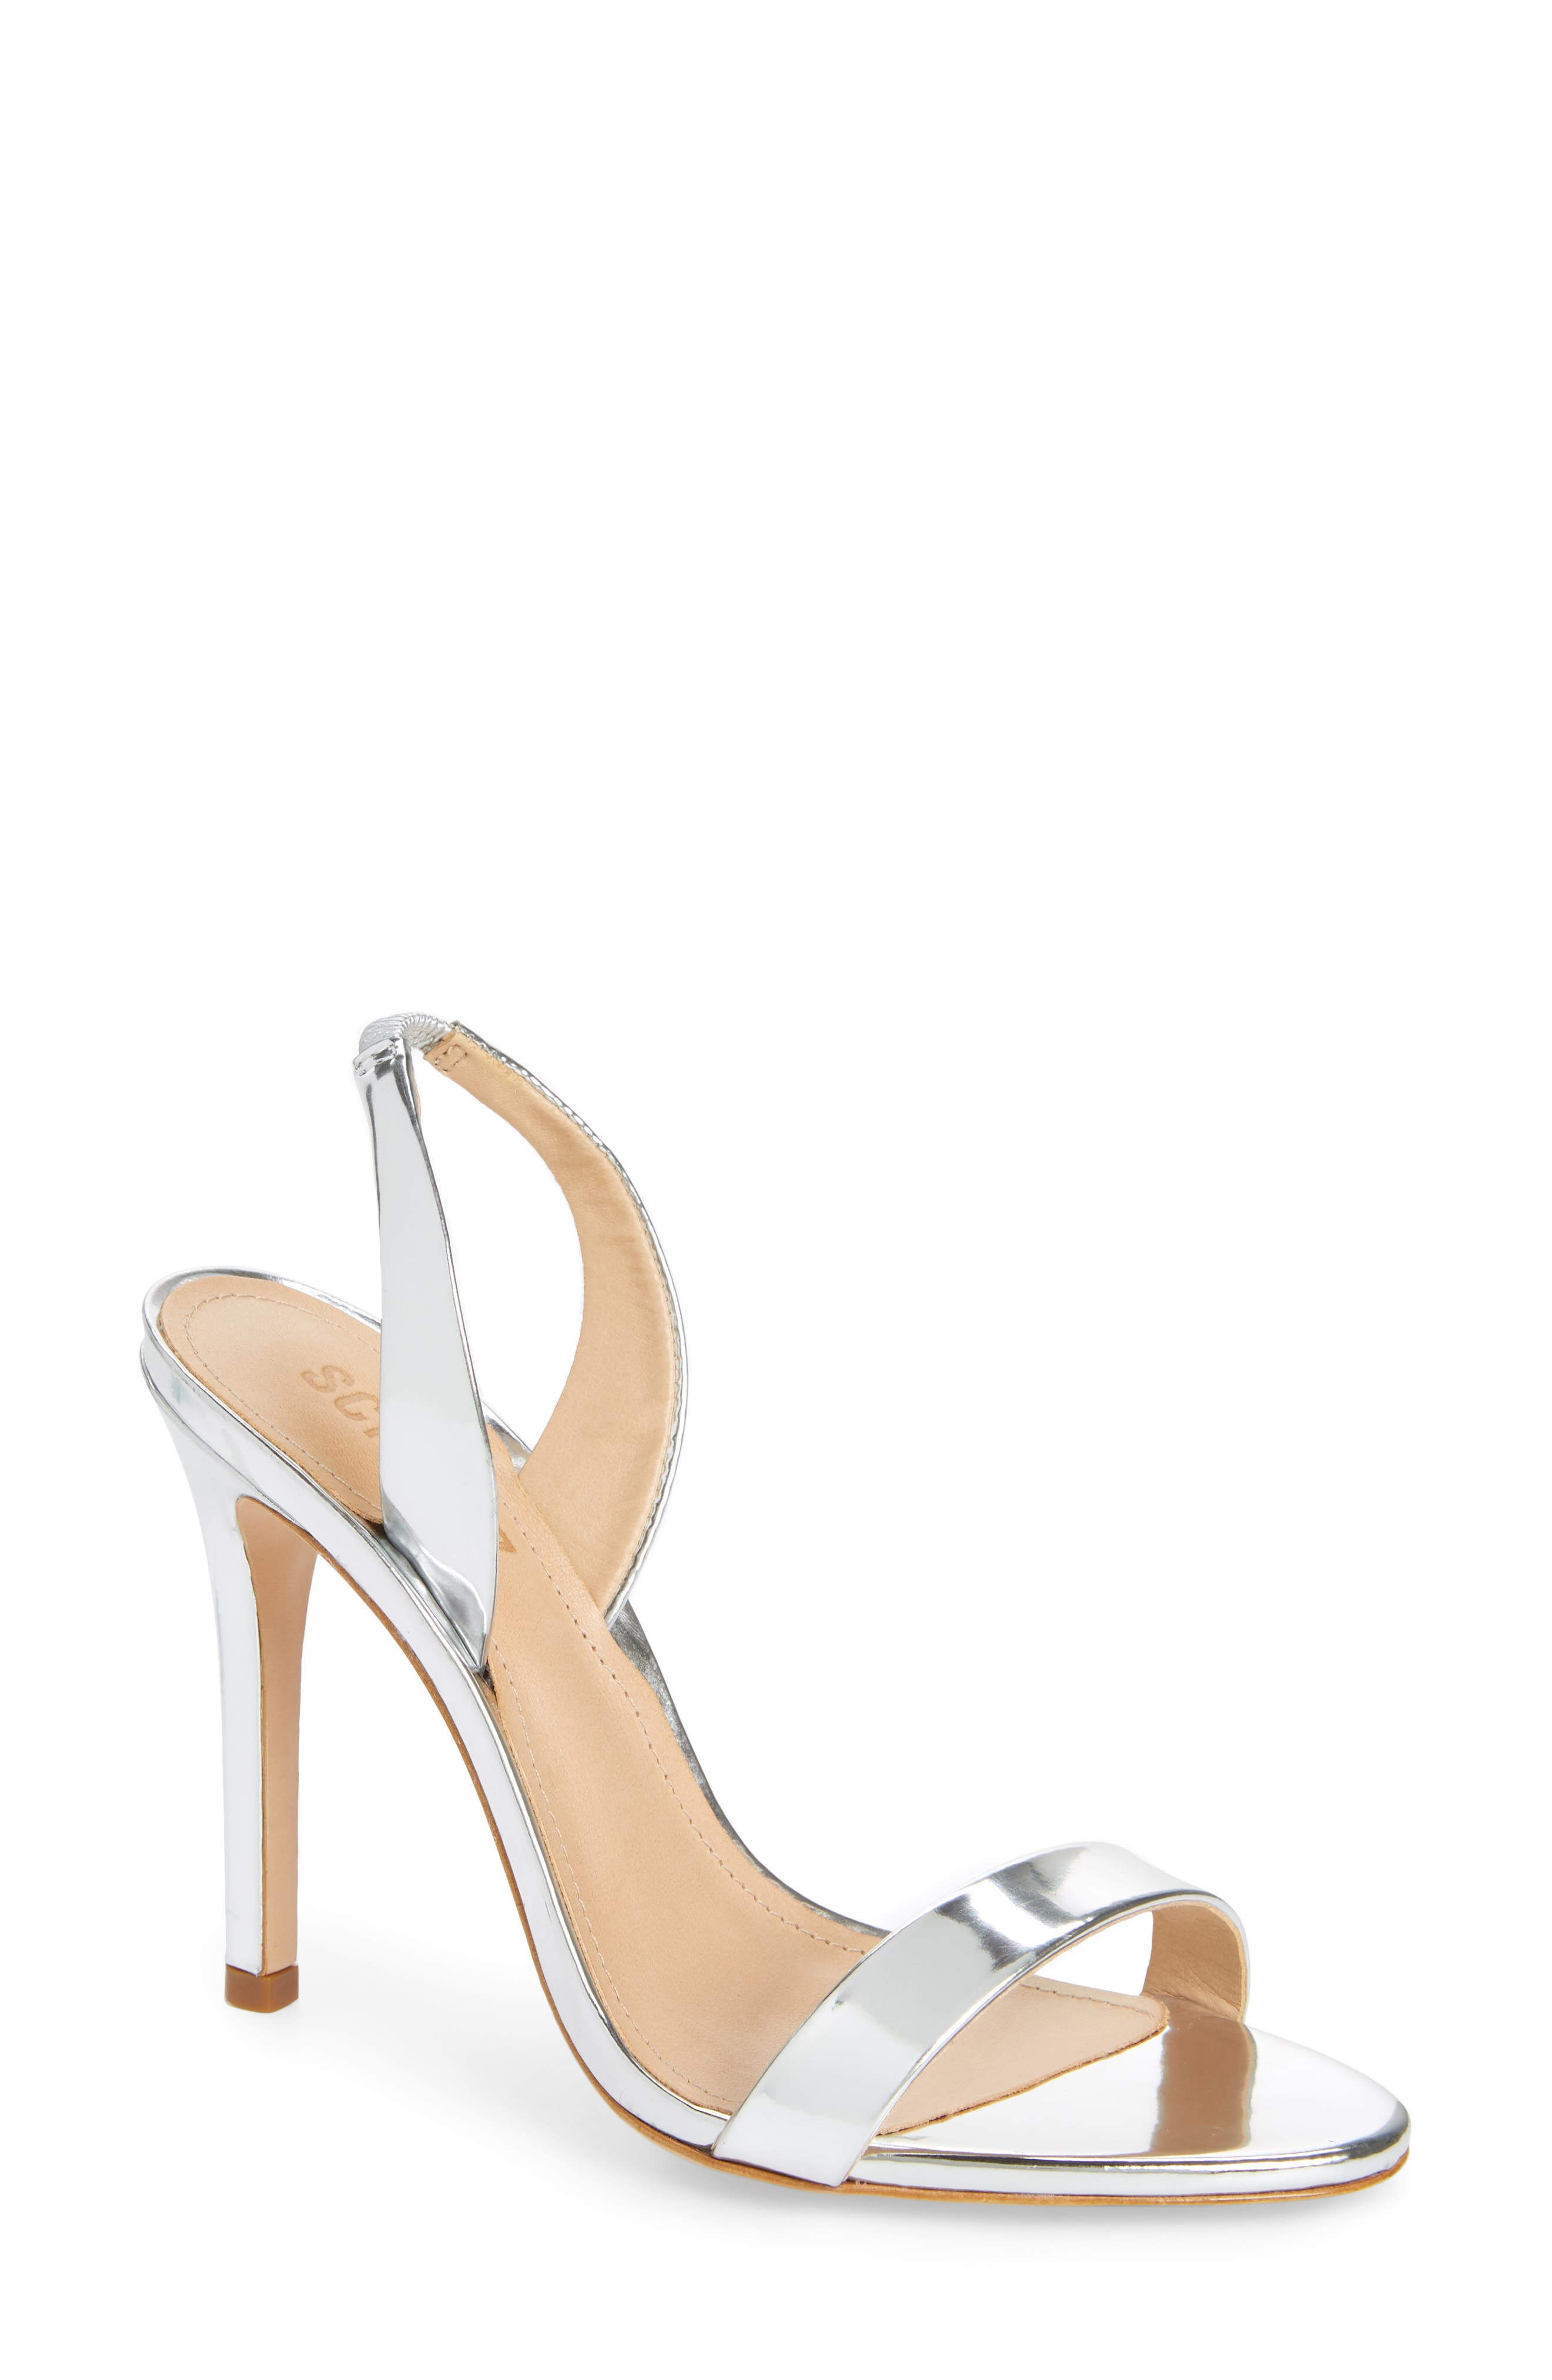 Luriane Sandal,                             Main thumbnail 1, color,                             SILVER PATENT LEATHER